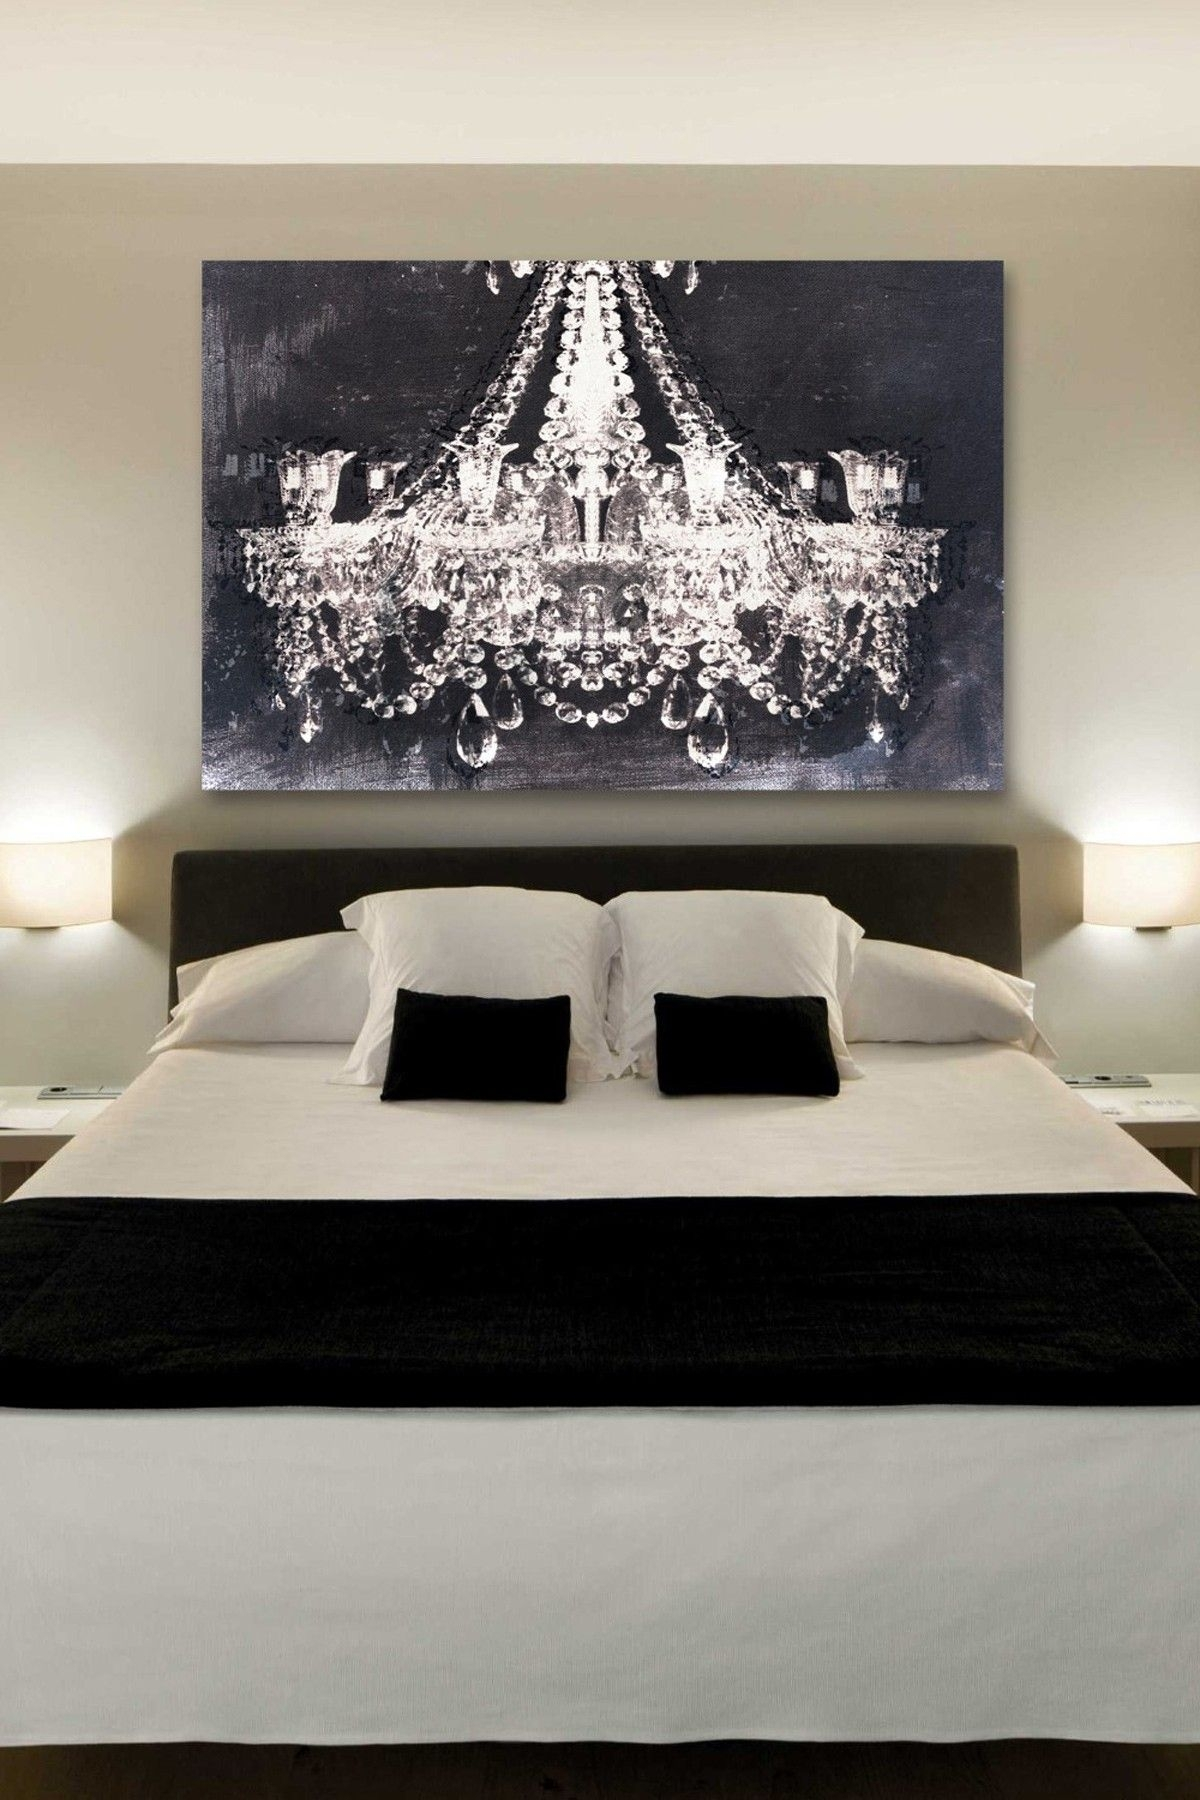 The Chandelier Art Gives Such A Romantic Touch To This Bedroom Intended For Best And Newest Chandelier Wall Art (View 15 of 20)